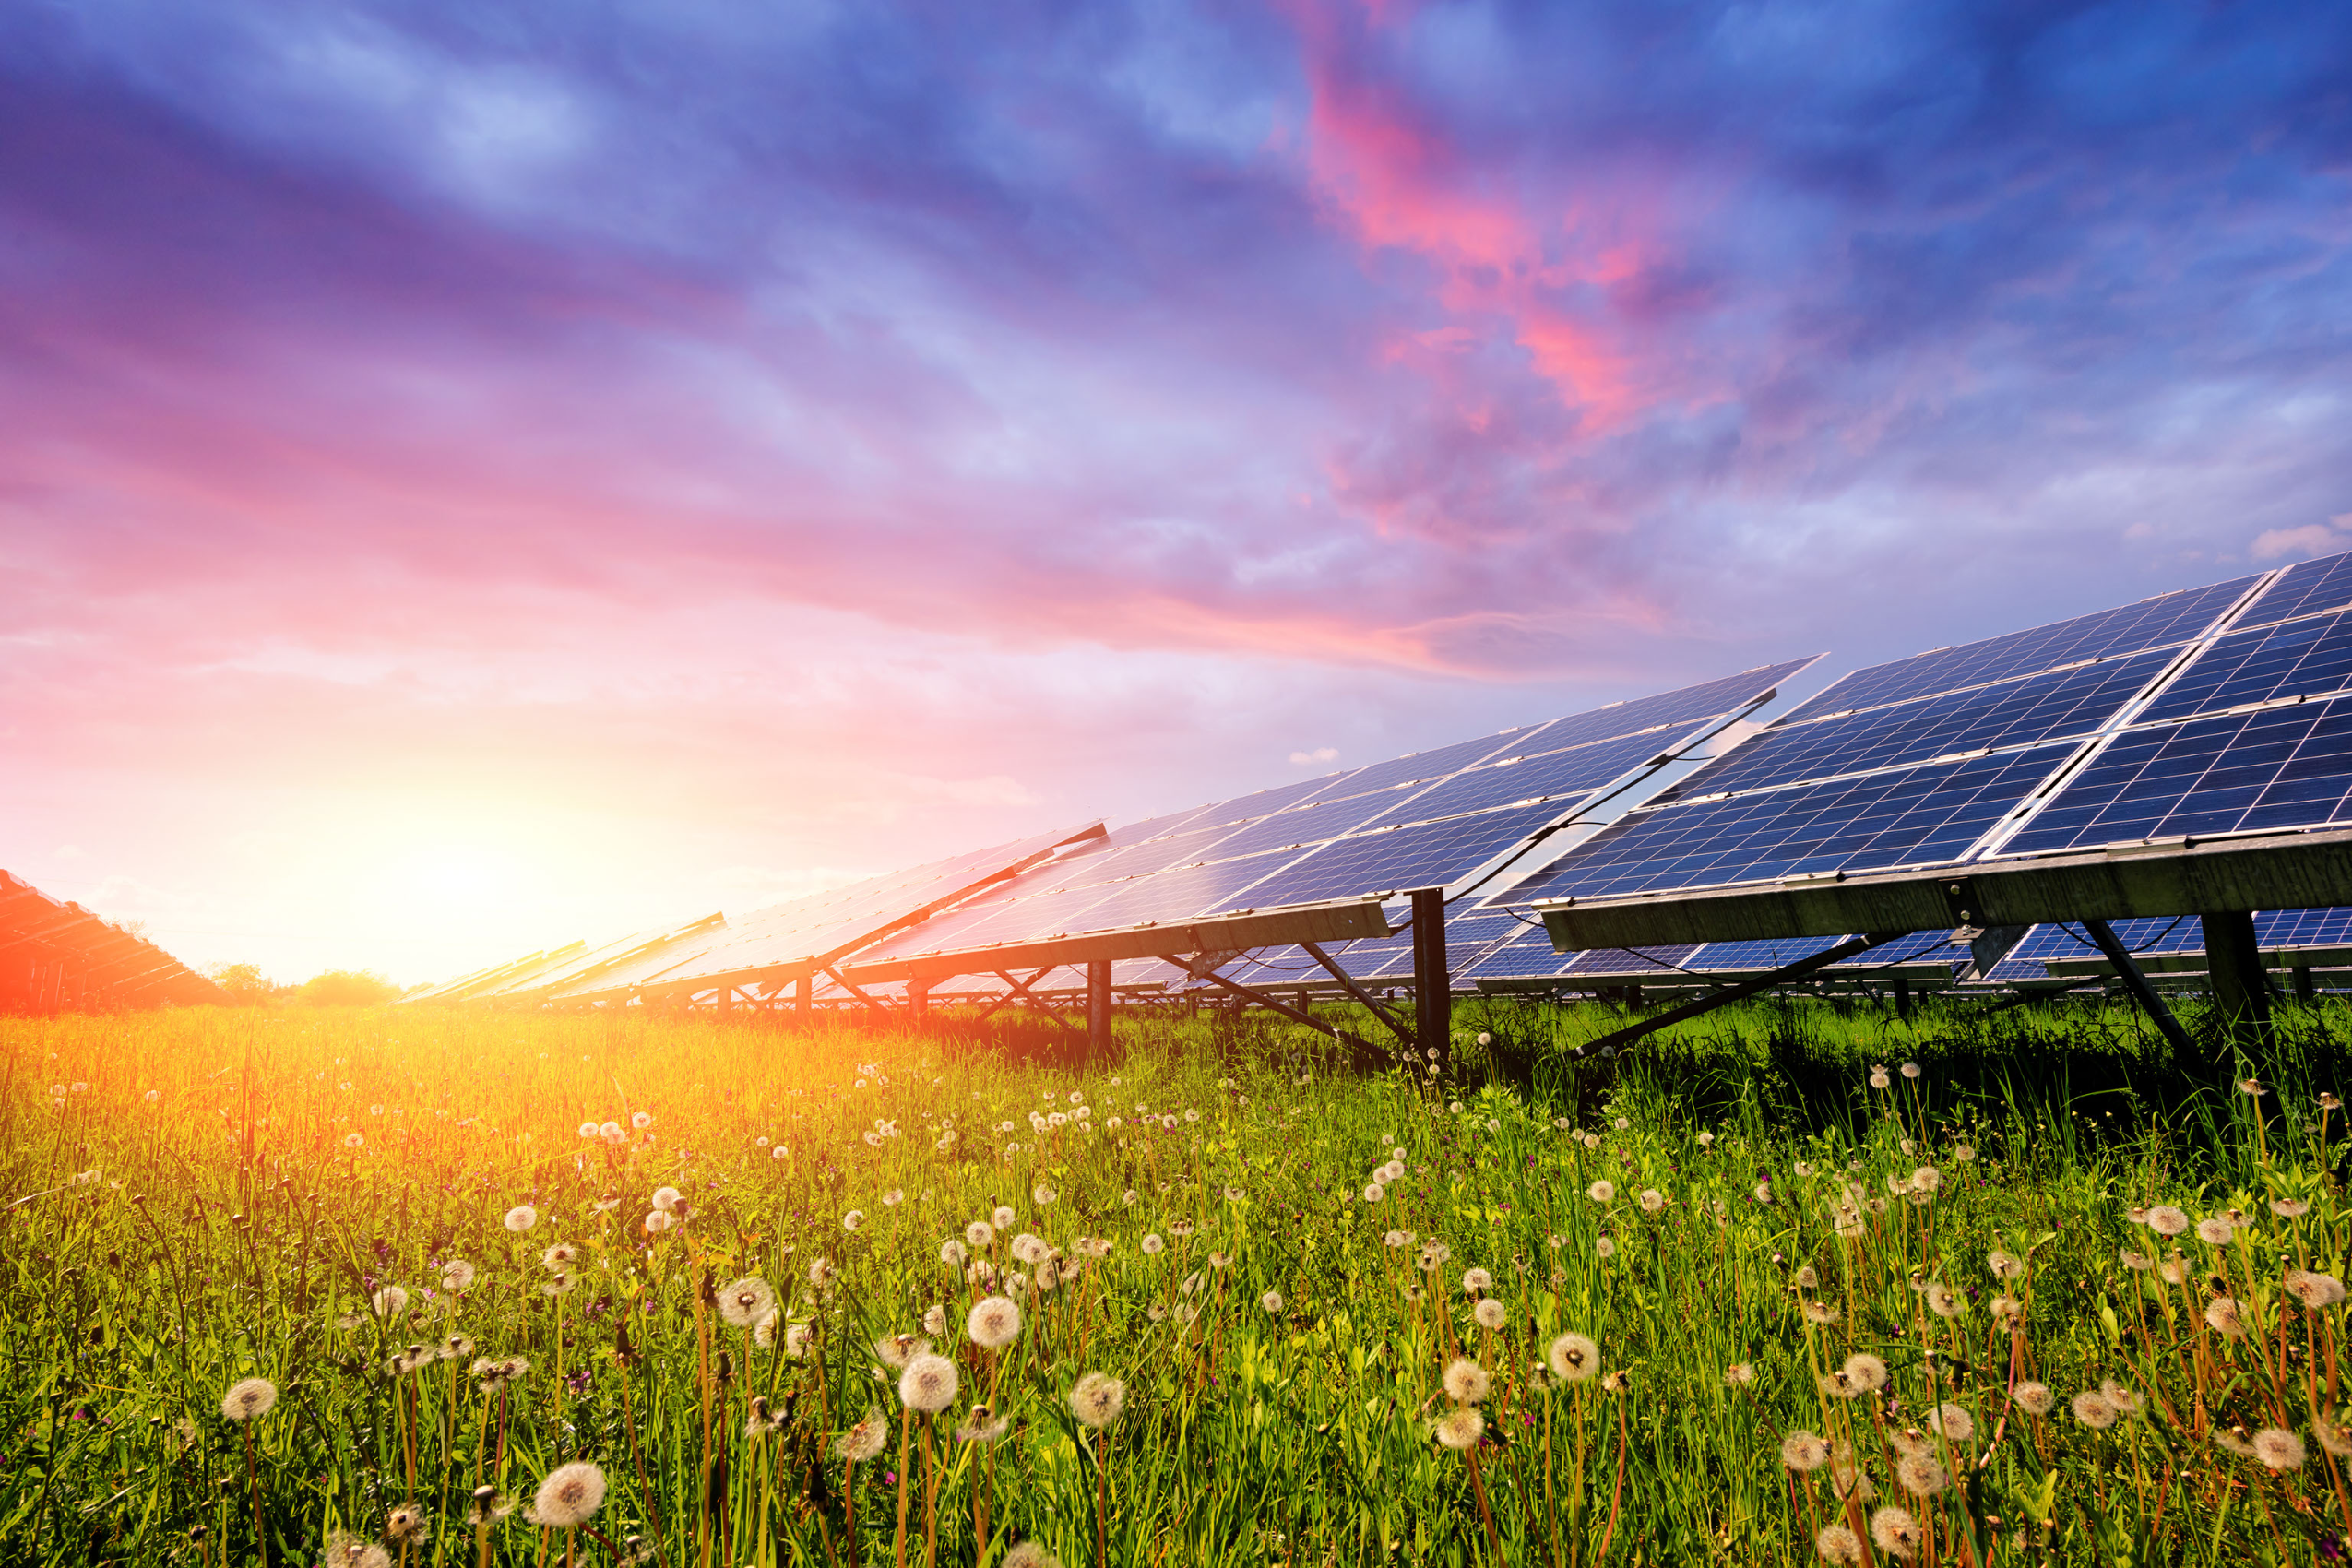 Solar panels with a setting sun in background and flowers in foreground